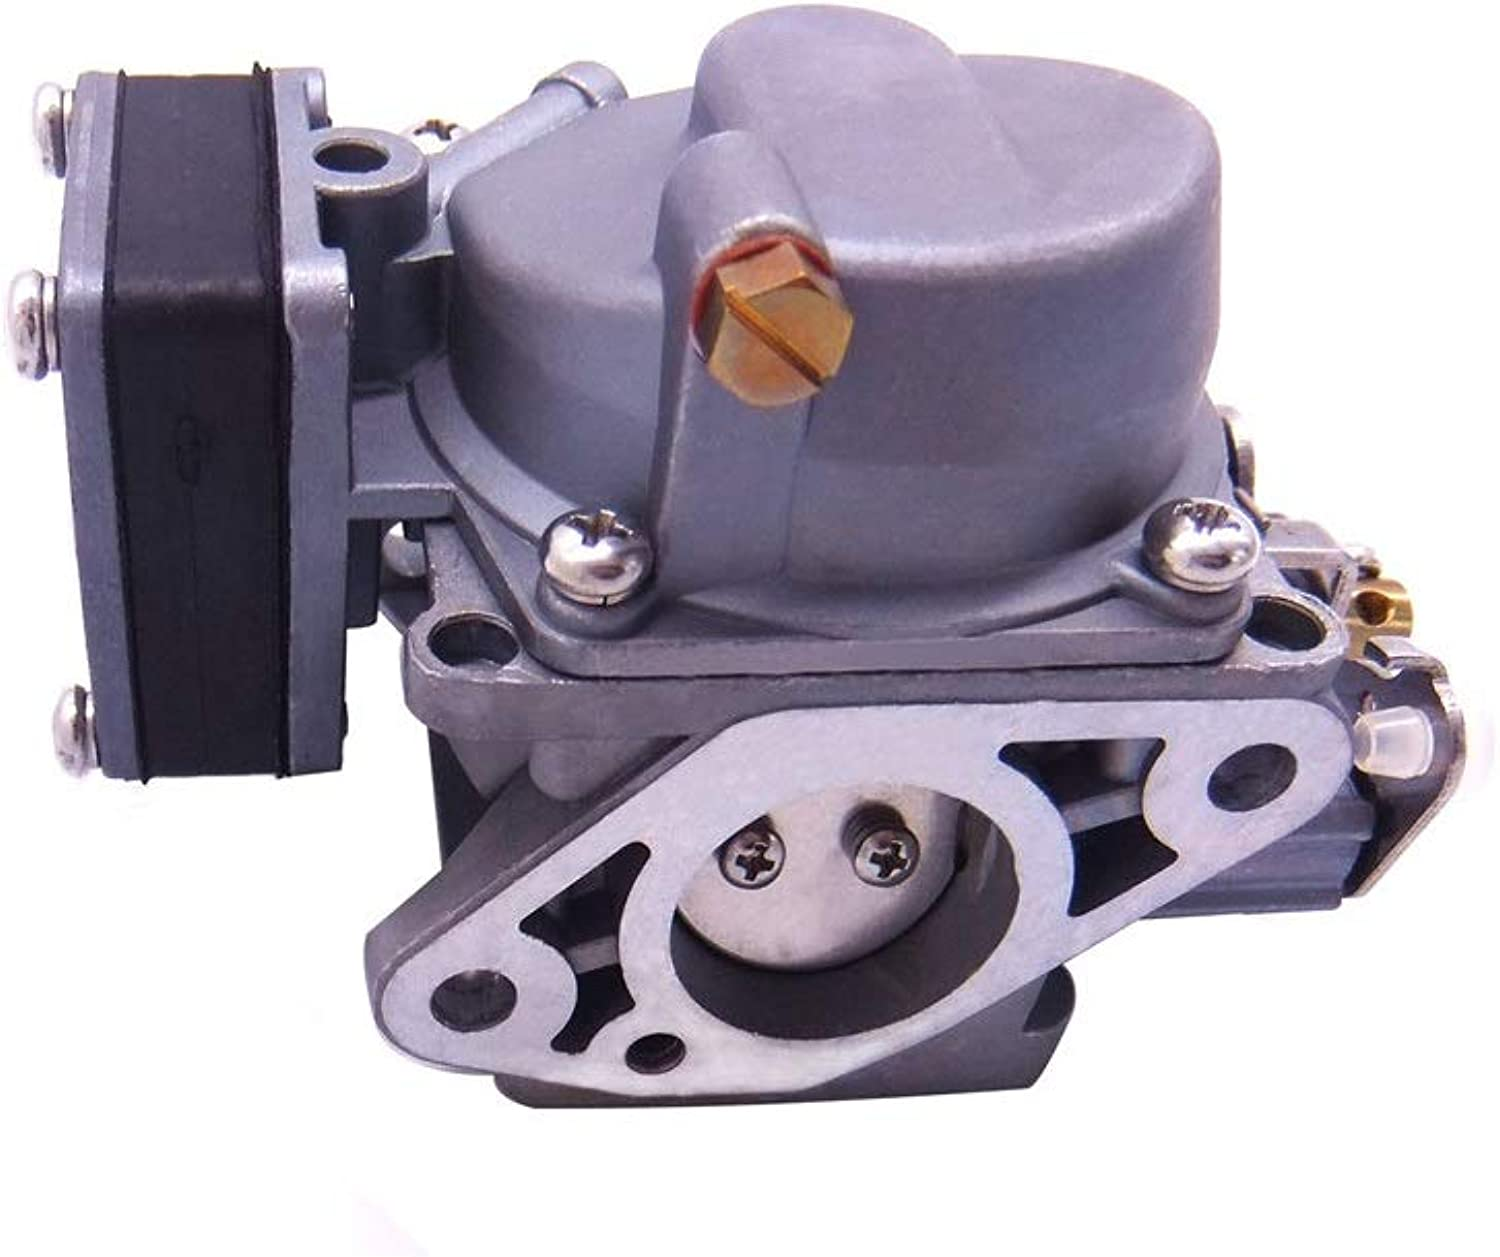 Boat Engine 3303812647T1 3303812648T Carburetor Assy for Mercury Marine 2Stroke 4HP 5HP Outboard Motor